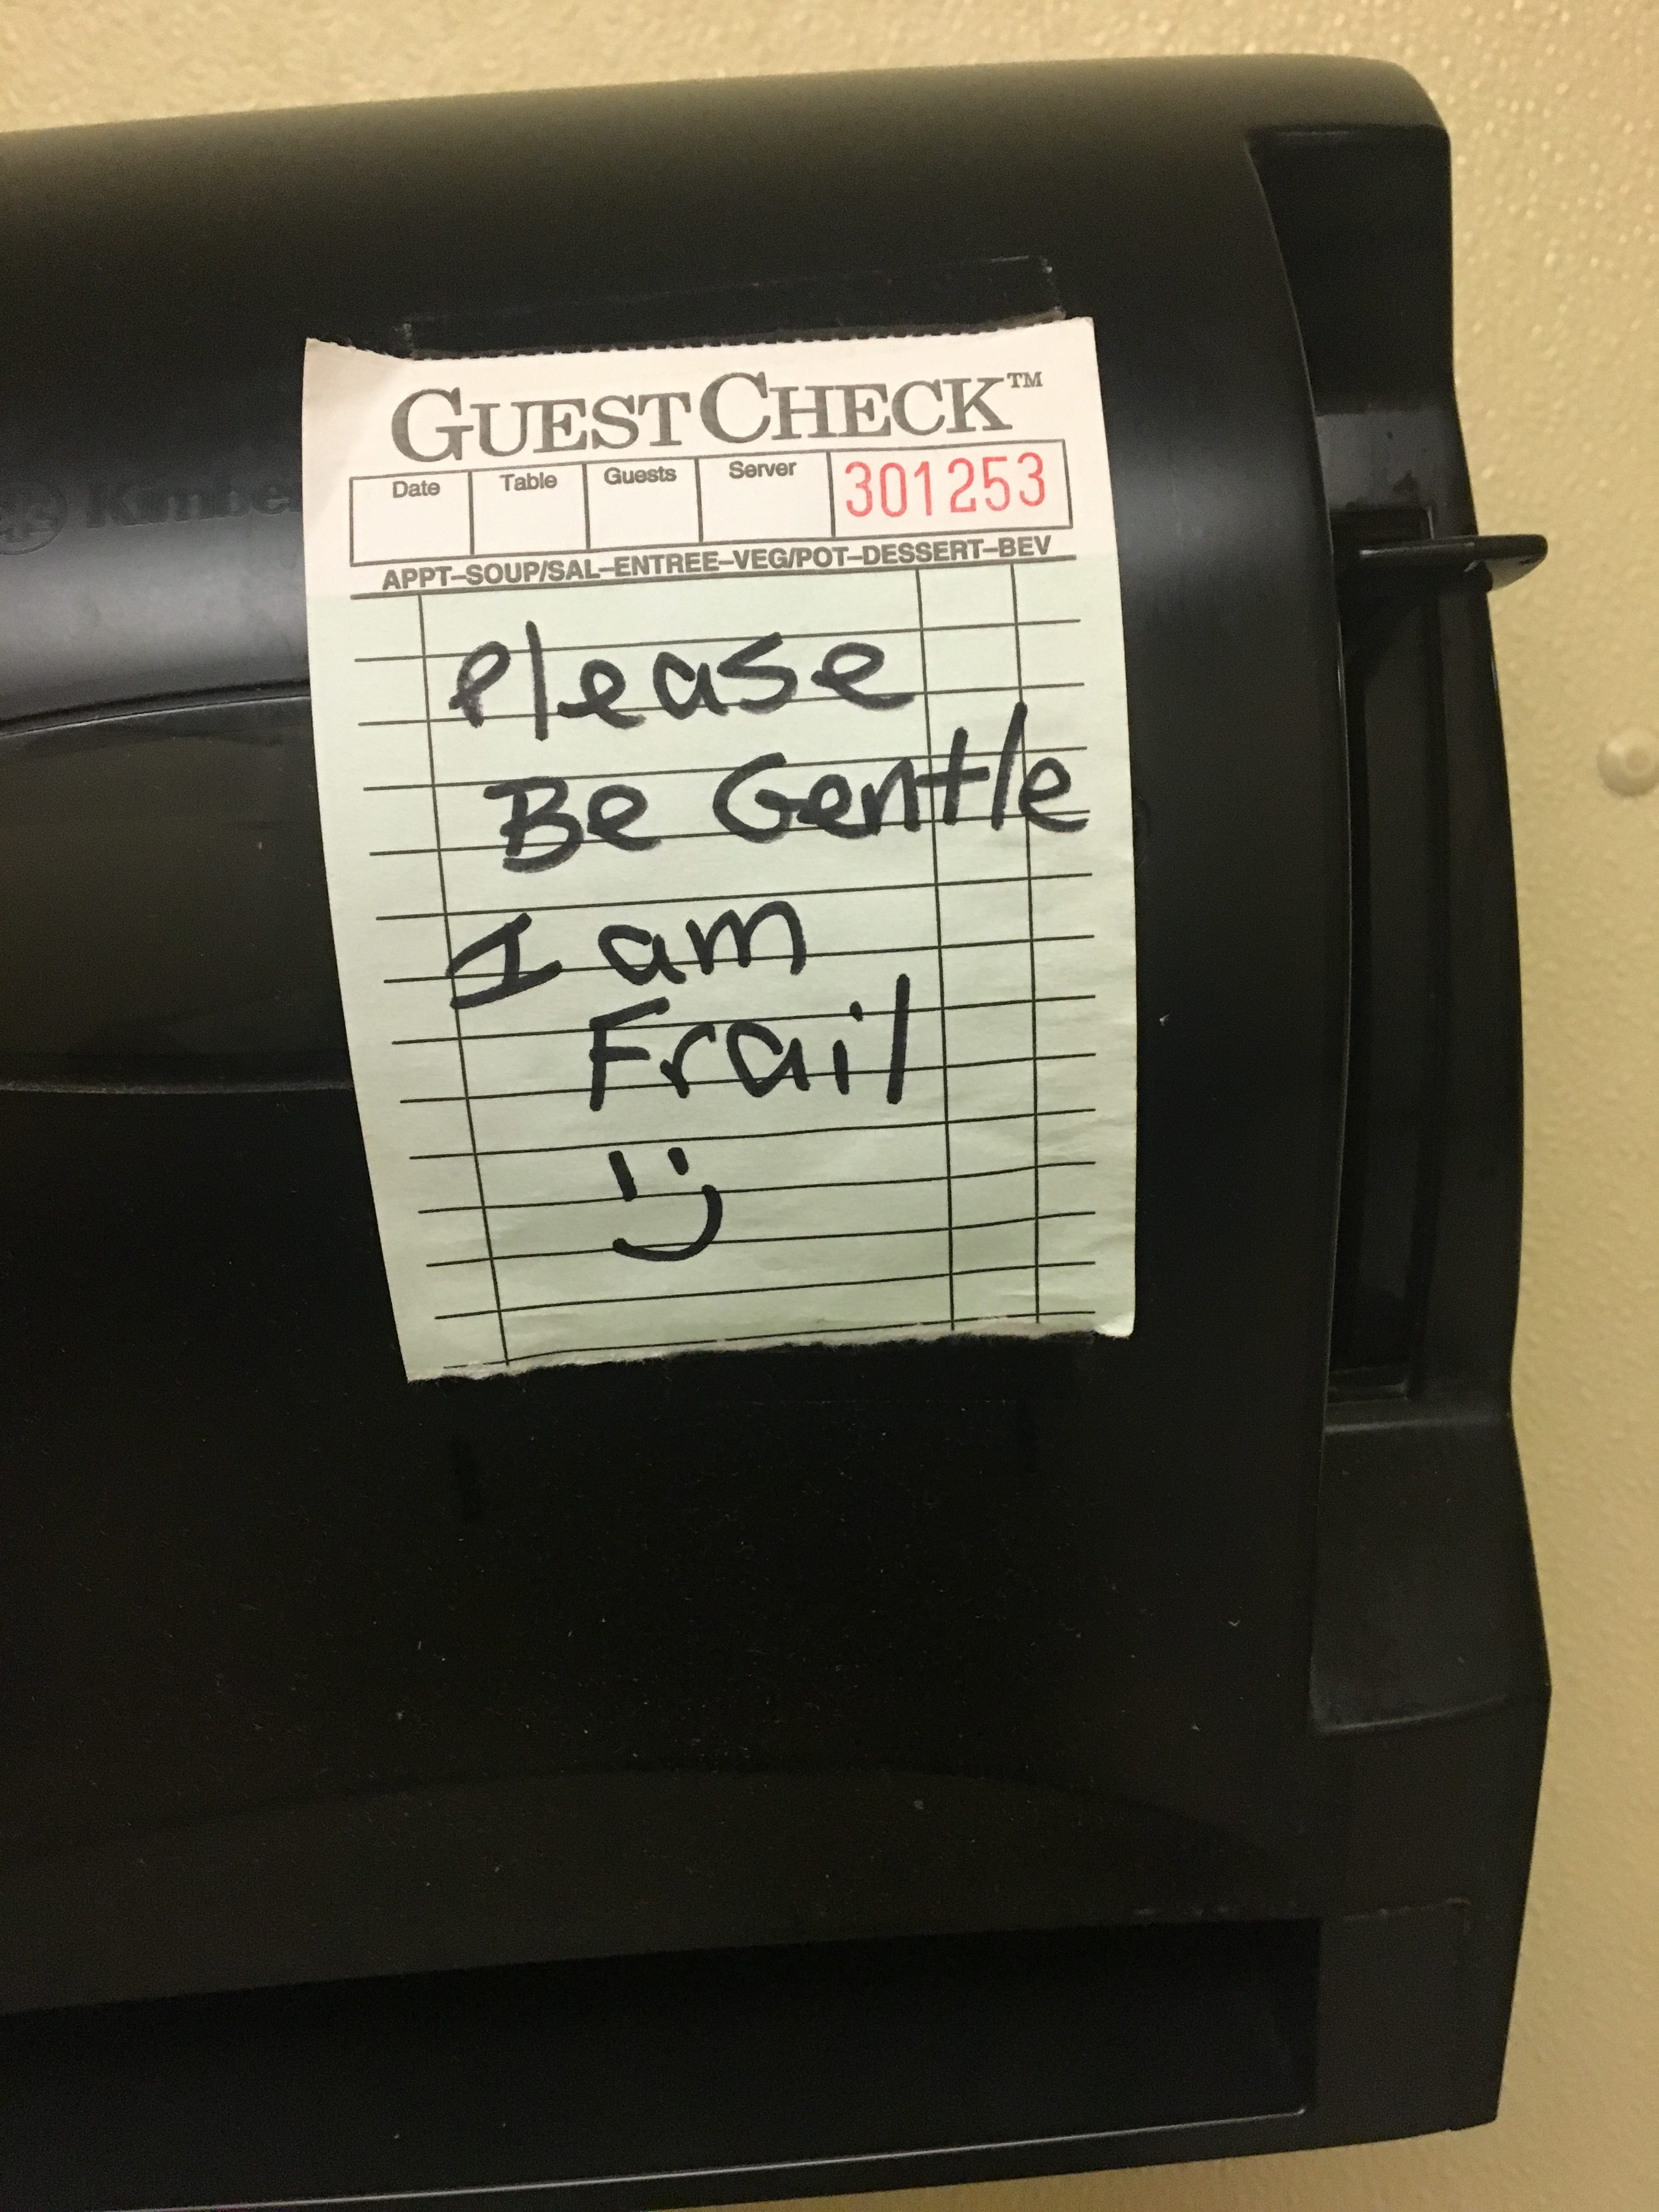 "A paper towel dispenser in a restaurant. A small sign on it reads ""Please Be Gentle I am Frail =)""."